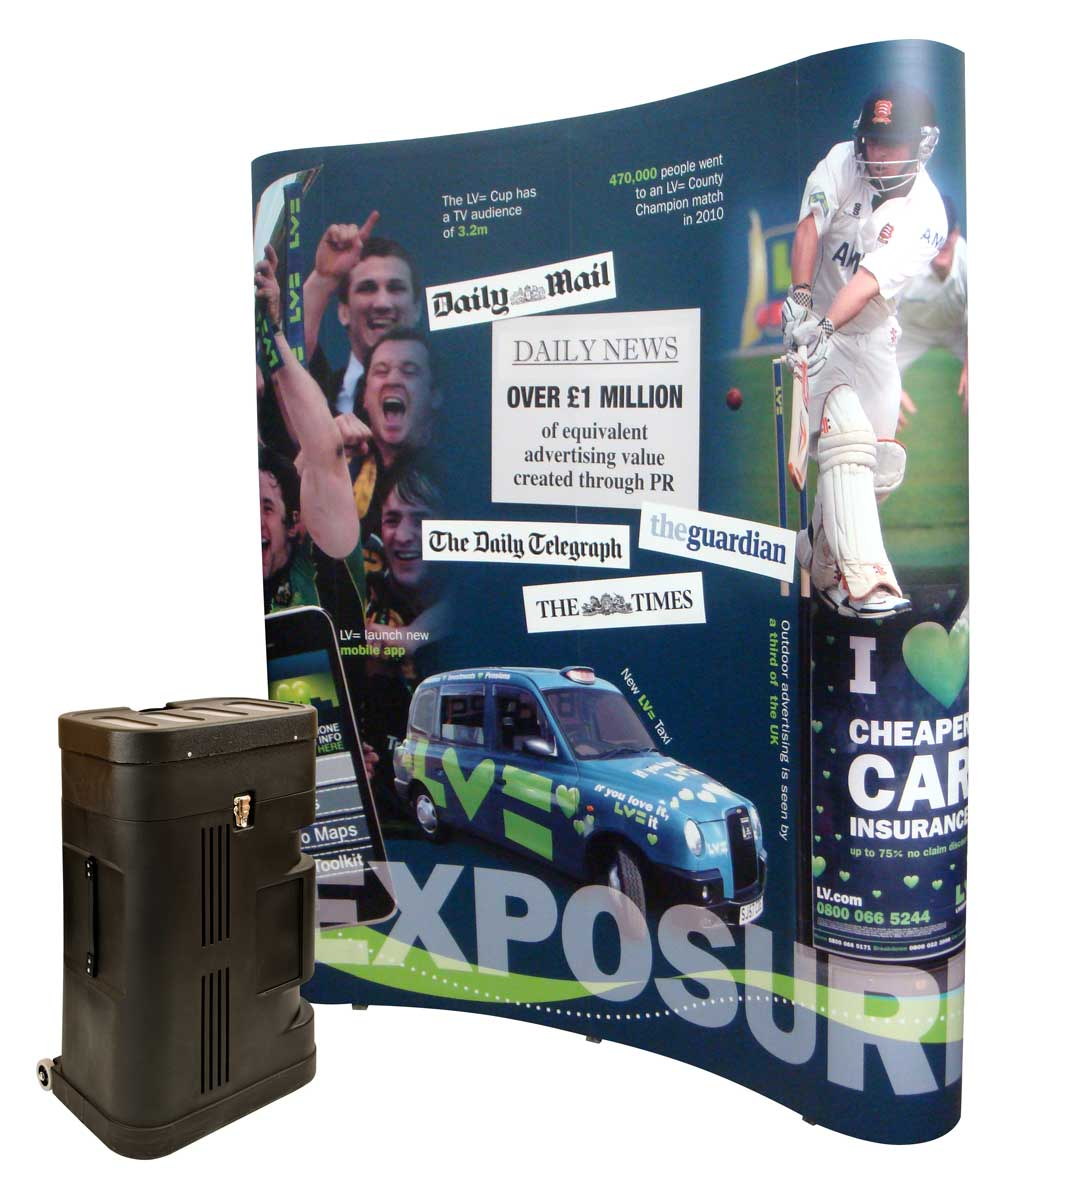 3x2 Pop Up Stands Evolution Quick Exhibition Stands